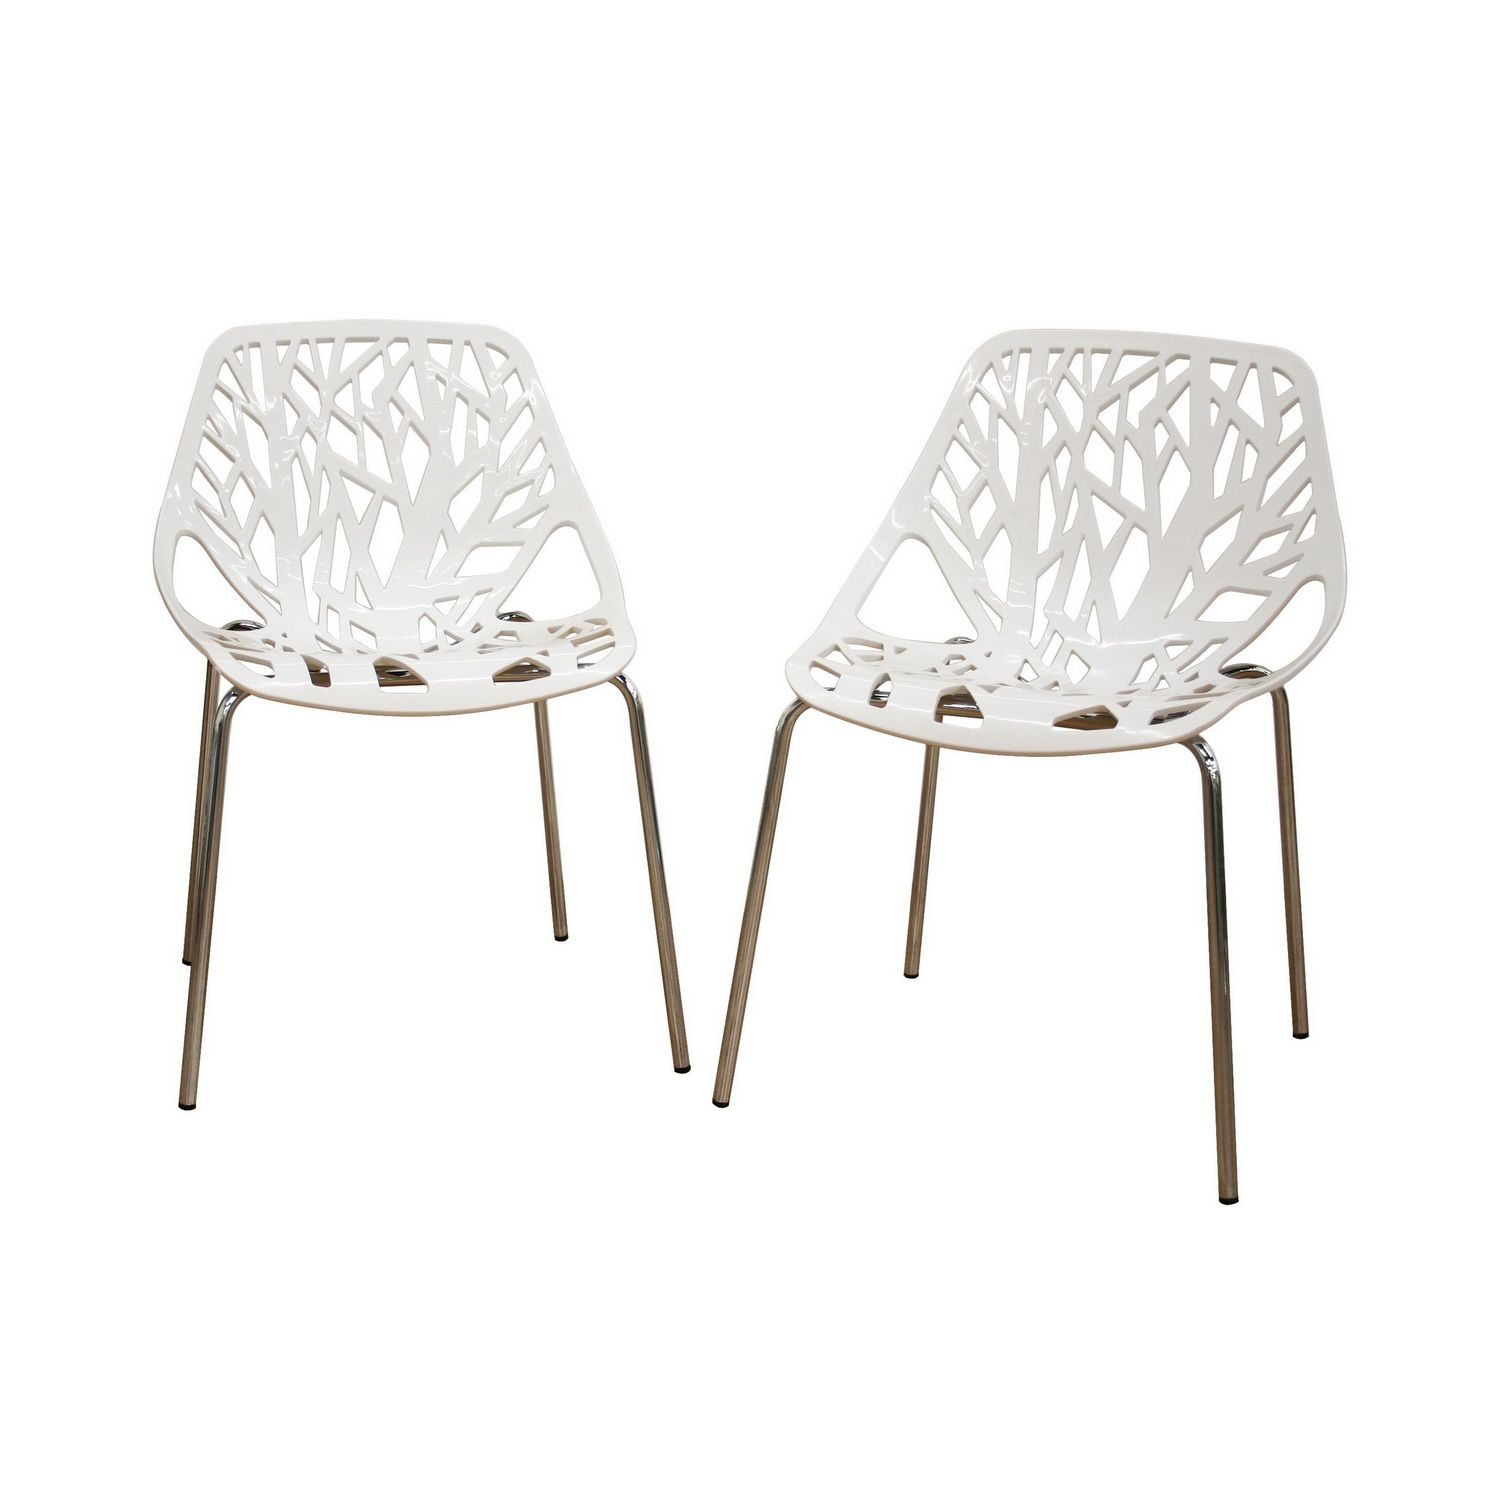 Birch Sapling White Plastic Accent / Dining